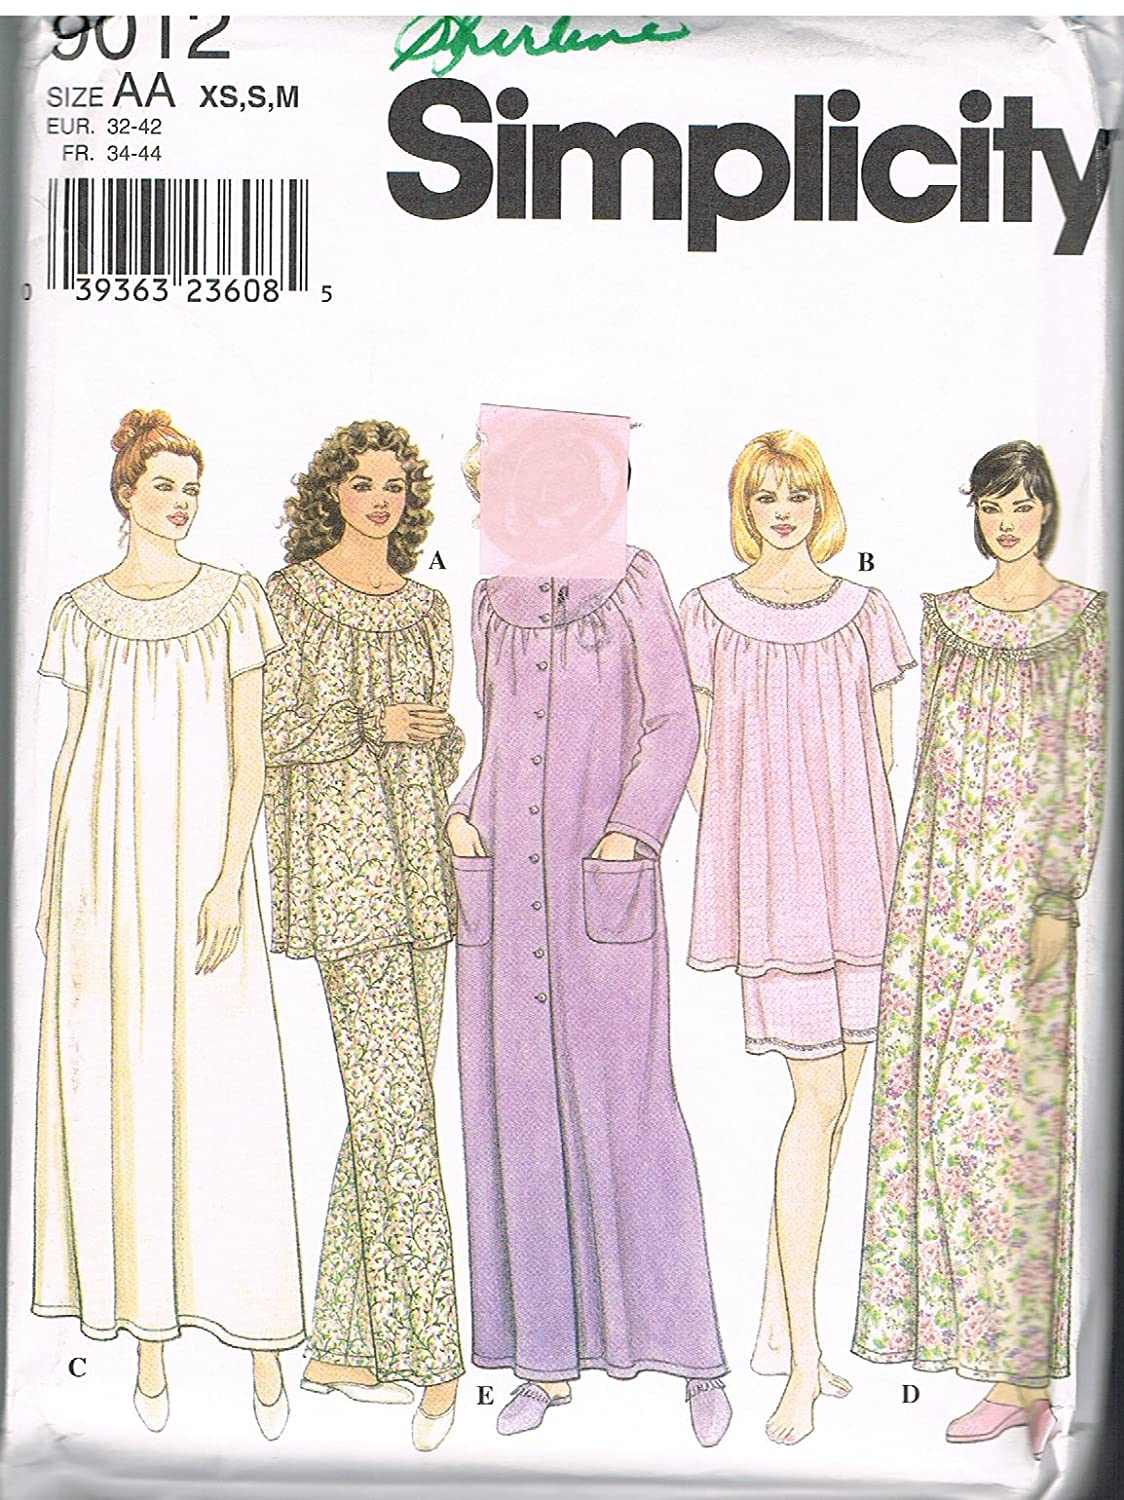 Amazon.com: Simplicity Womens Pajamas and Nightgown Sewing Pattern # 9012: Arts, Crafts & Sewing